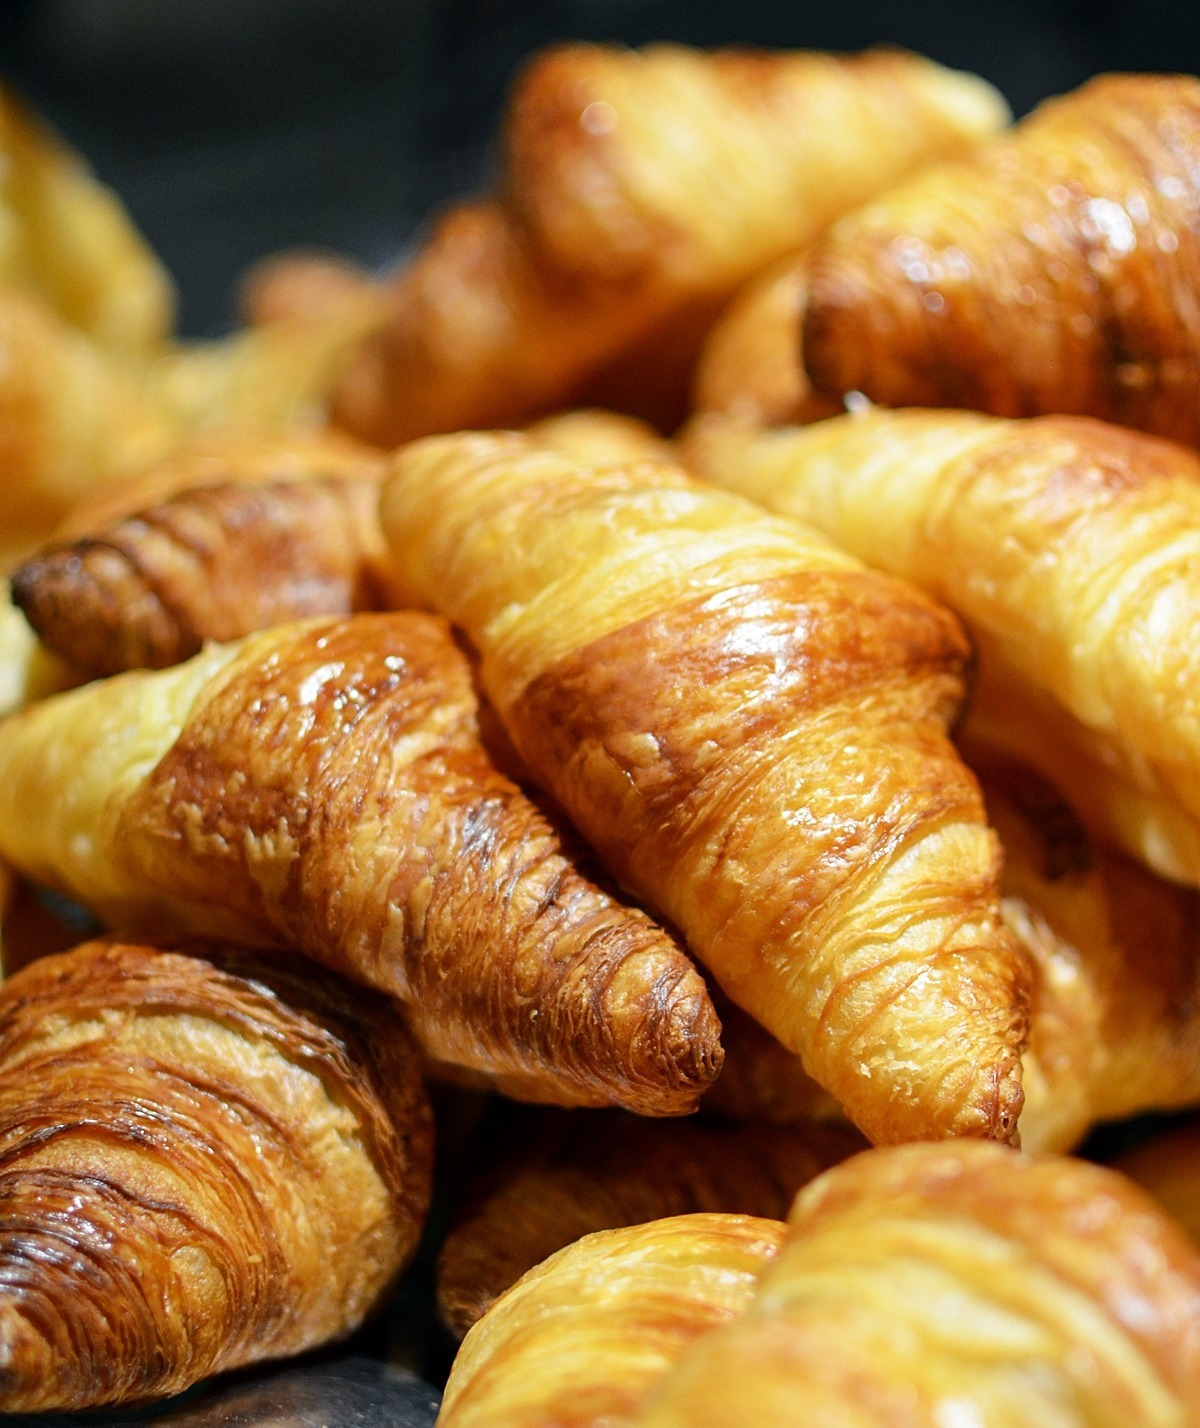 Croissants (c) Herryway CCO public domain